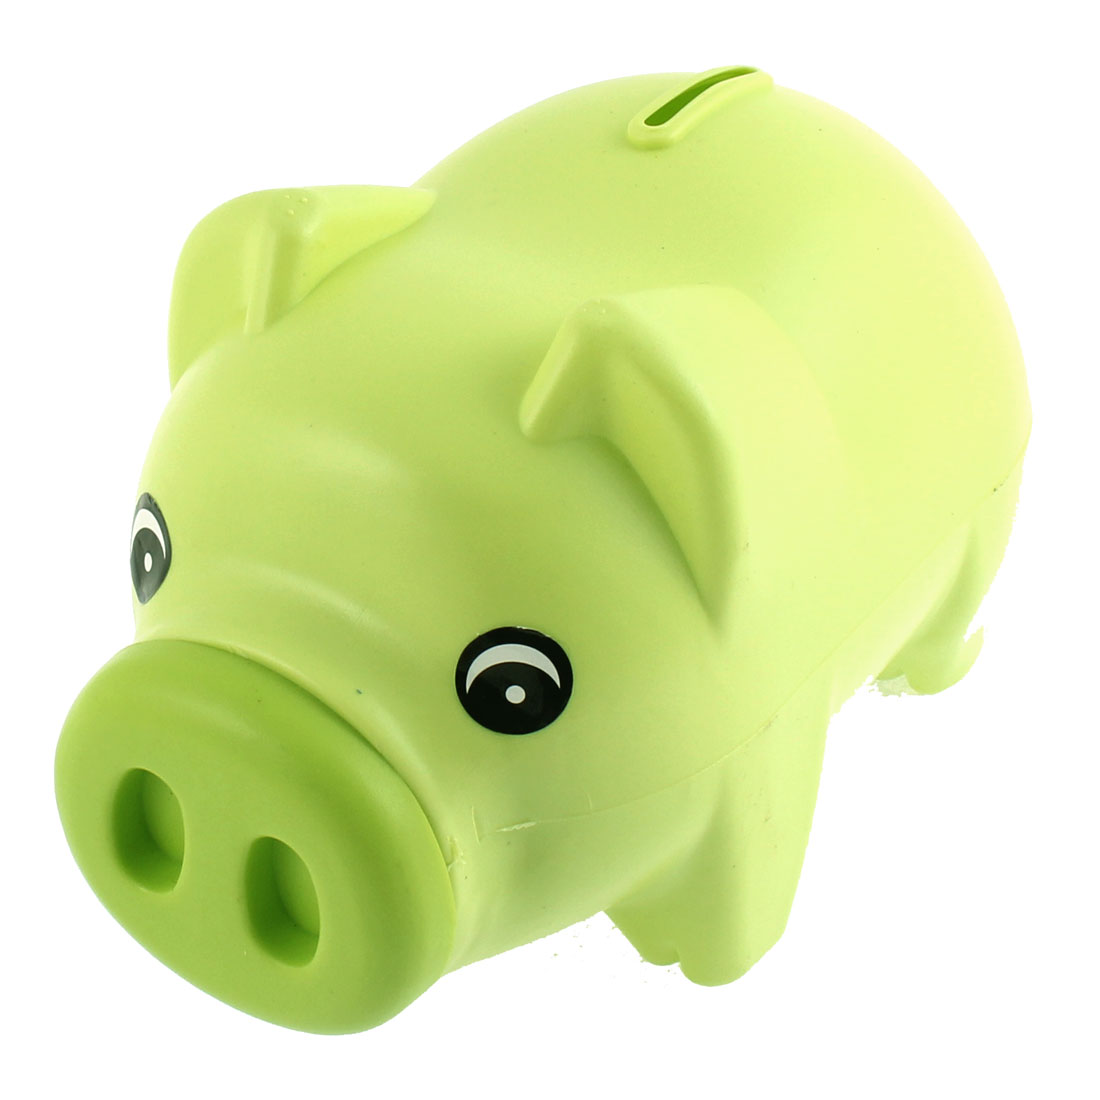 Plastic Pig Shape Money Cash Penny Cent Saving Pot Coin Piggy Bank Light Green